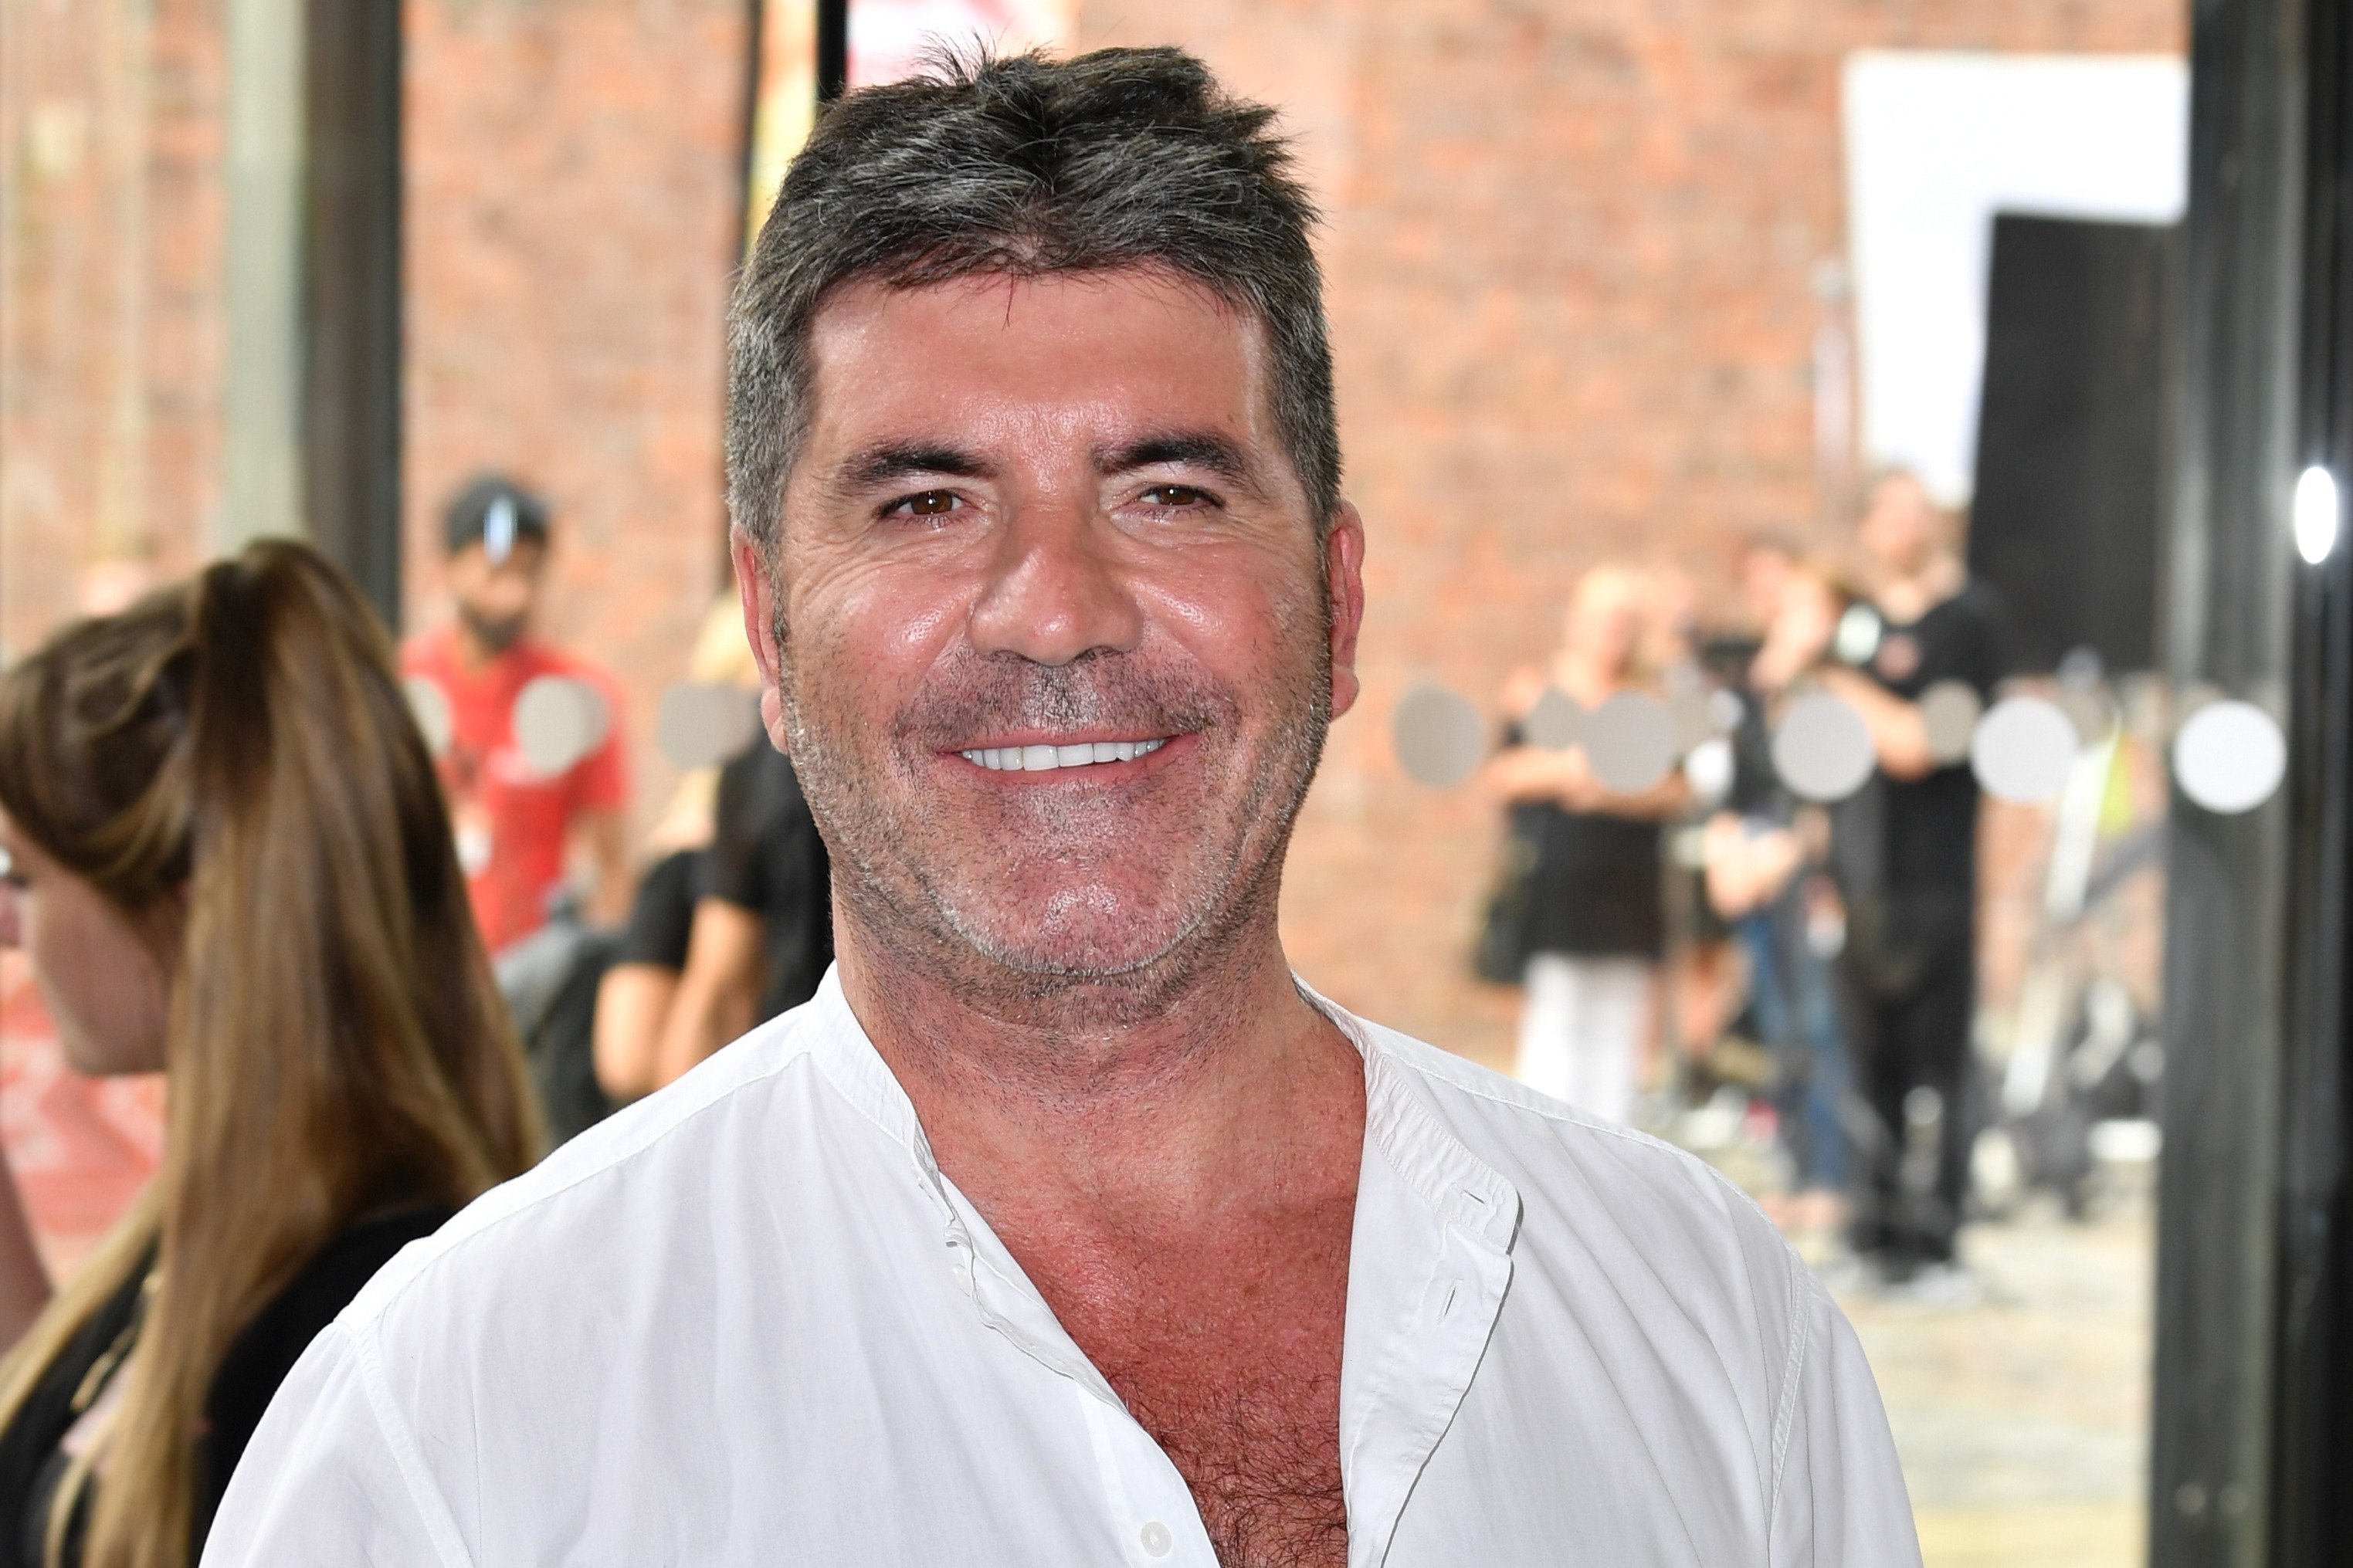 """Music producer Simon Cowell attends the first day of the """"X-Factor"""" auditions at the Titanic Hotel in Liverpool, England on June 20, 2017. 